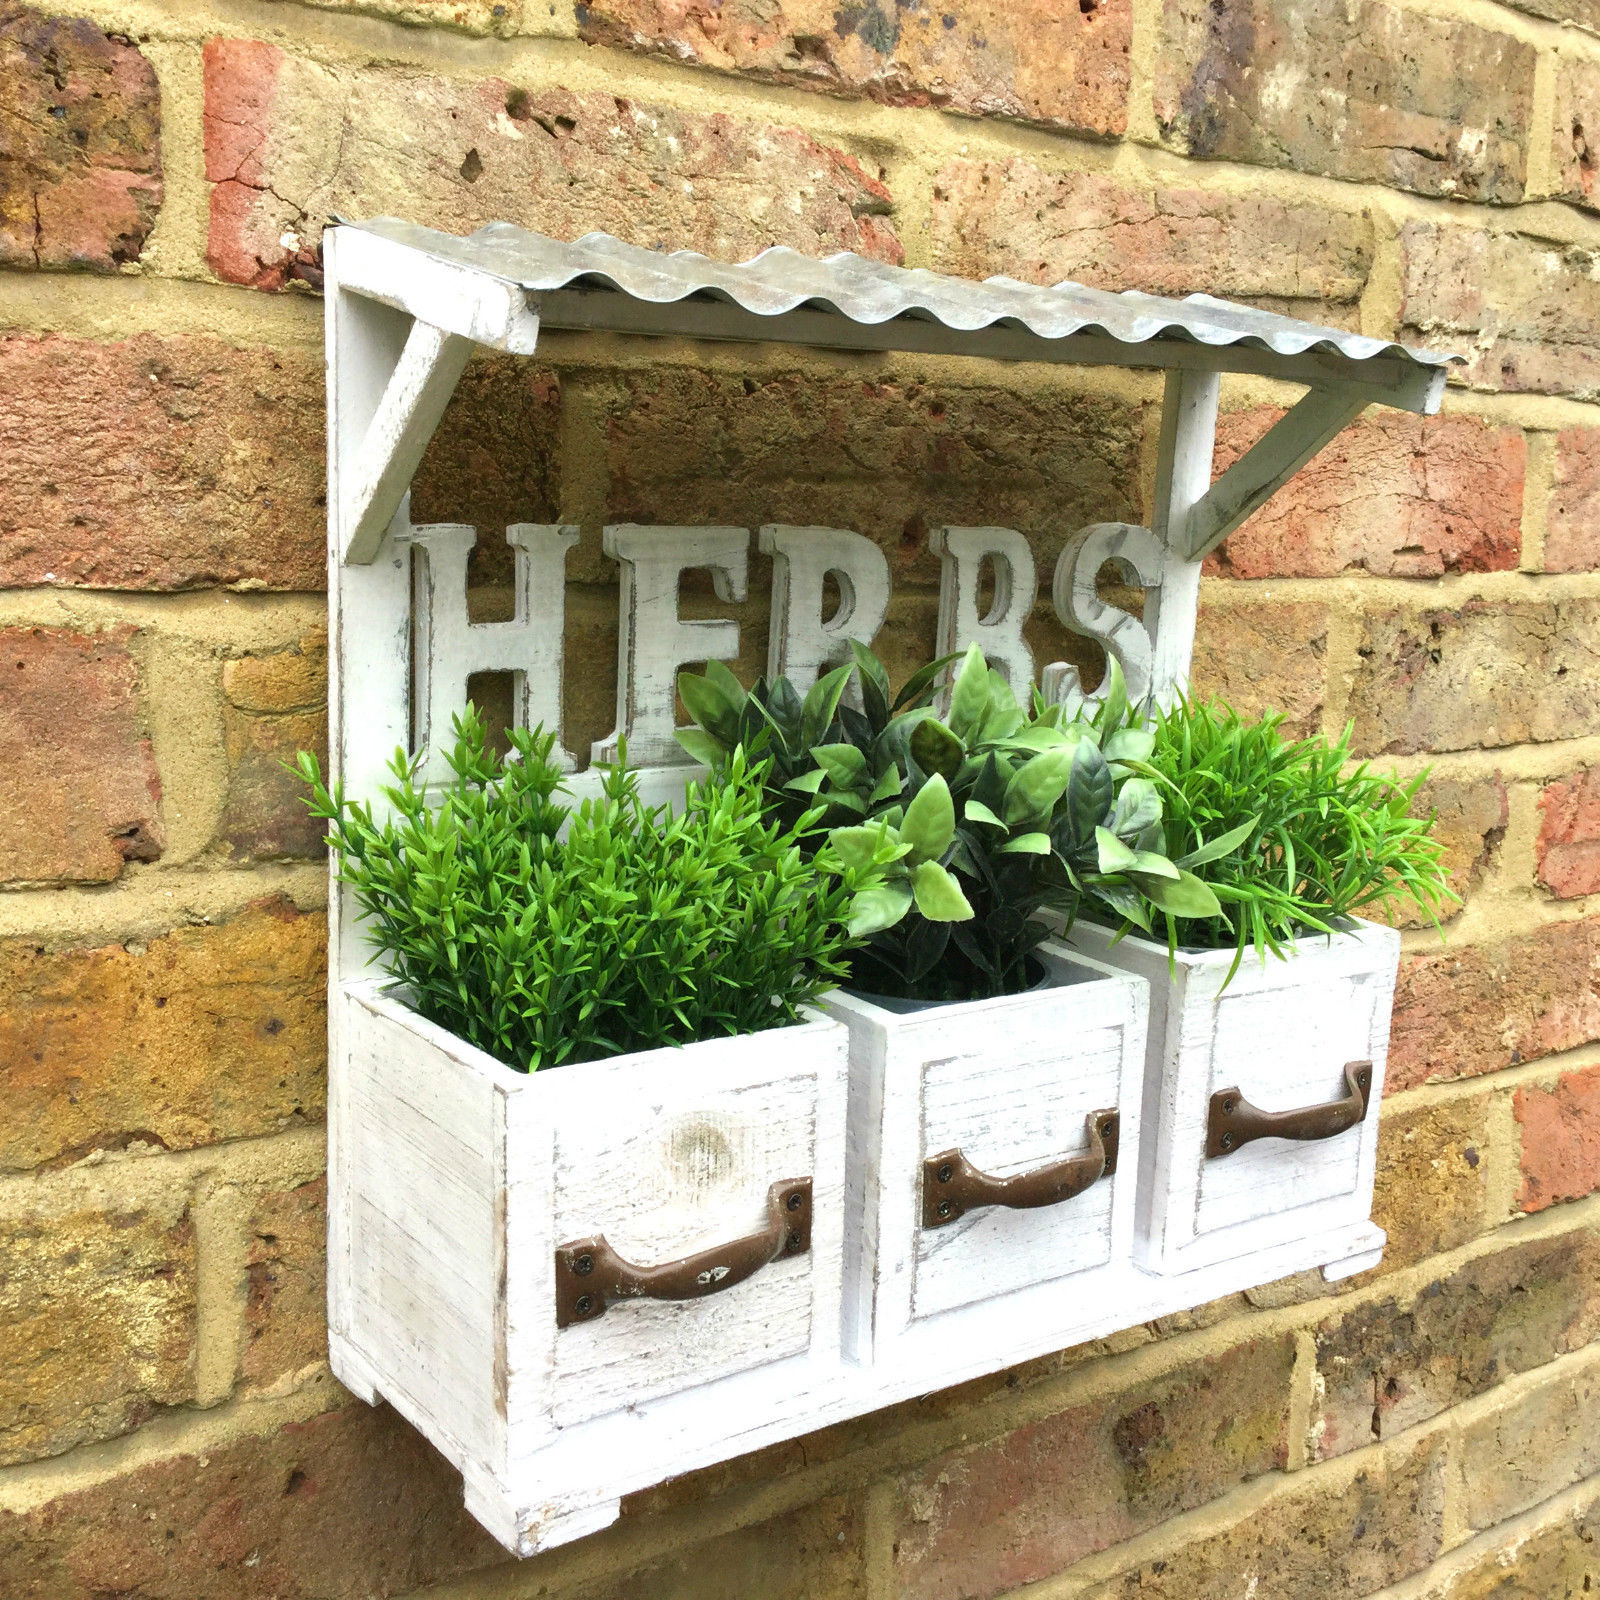 Kitchen Window Herb Planter: Shabby Chic Vintage Style Wooden Wall Garden Planter Pots